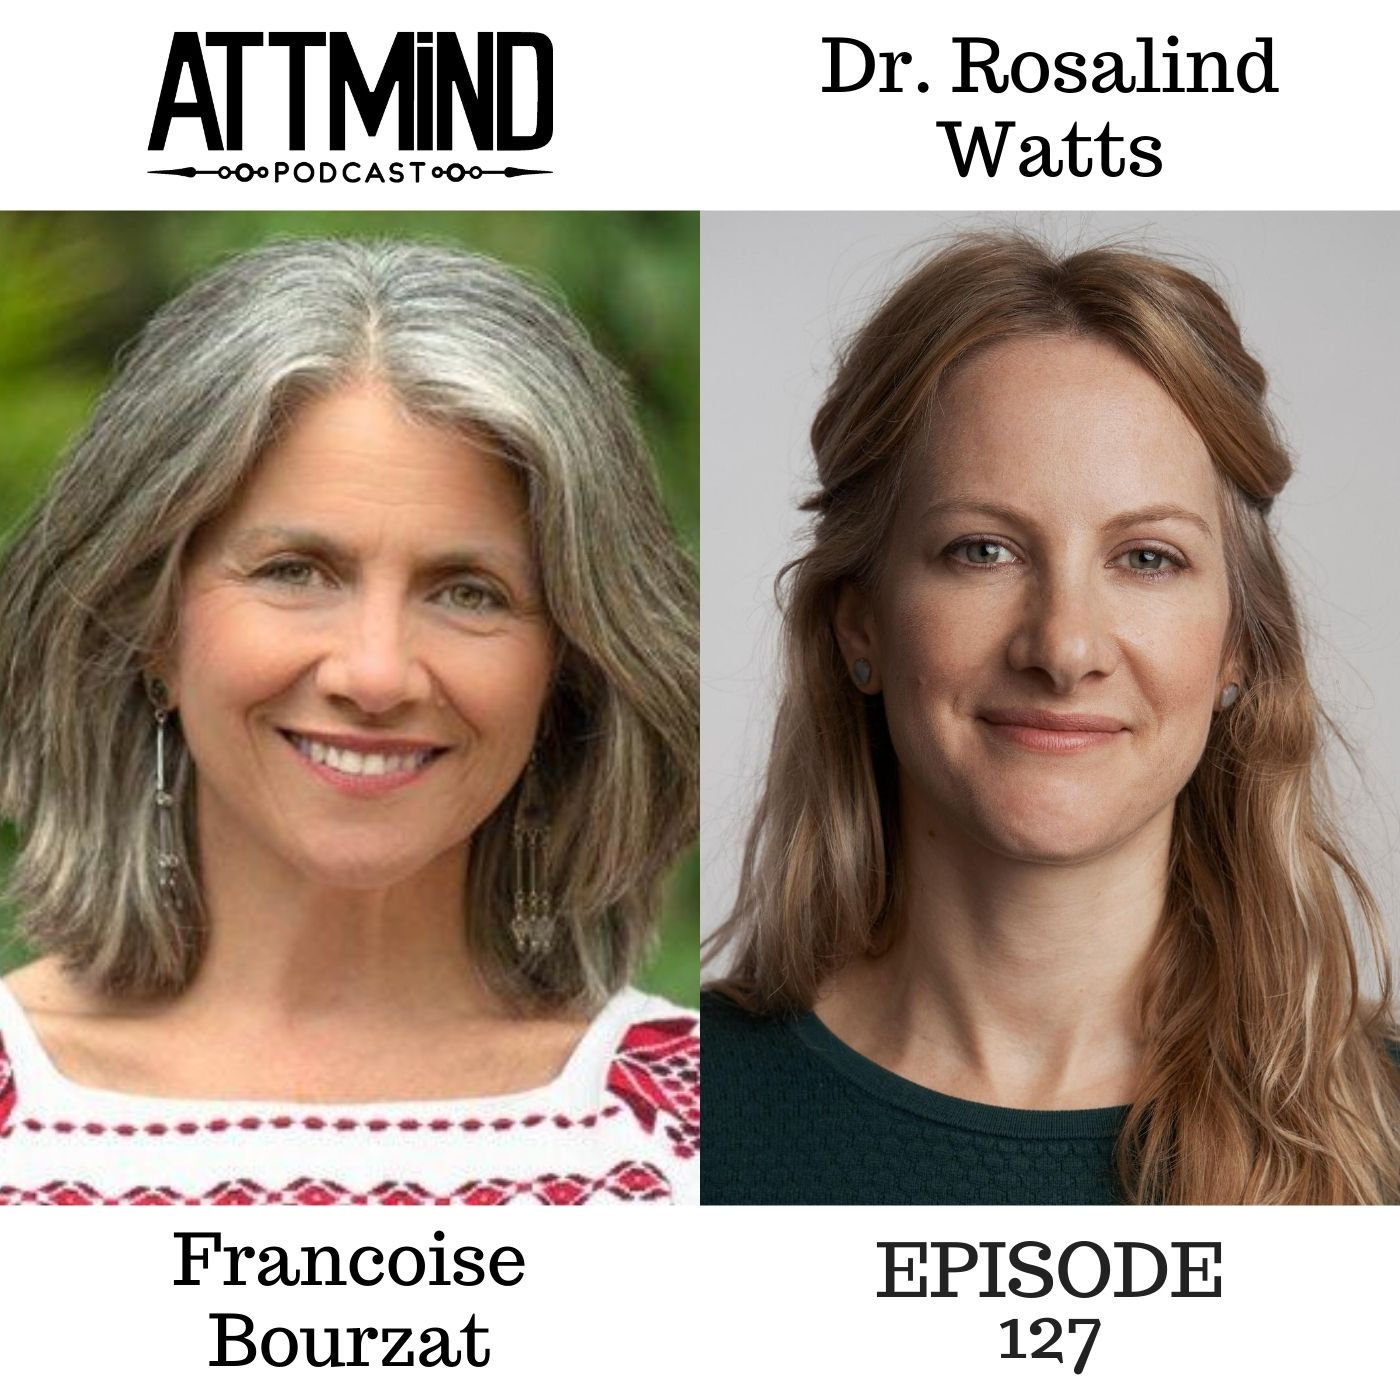 Psilocybin Therapy and Mushroom Wisdom | Francoise Bourzat and Dr. Rosalind Watts ~ ATTMind 127